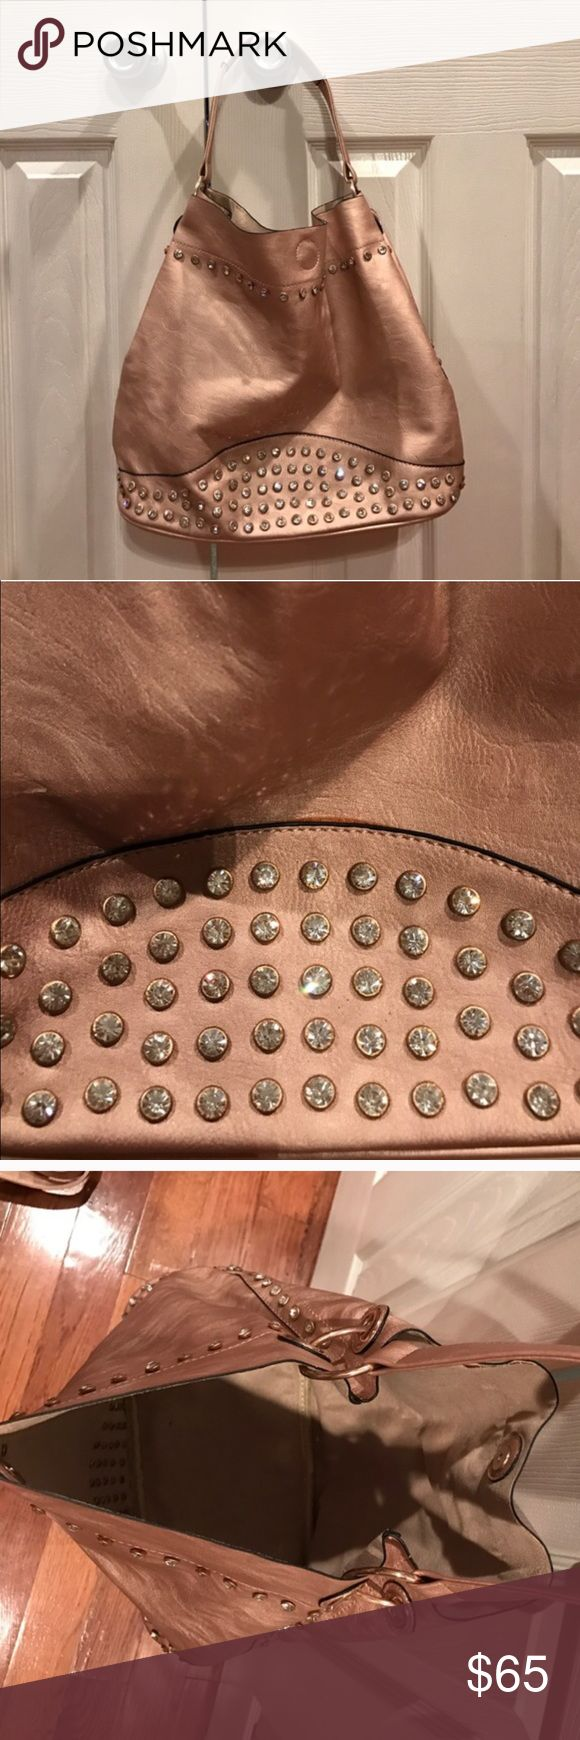 Rosegold Diamond Studded Purse! Rosegold Diamond Studded Purse! From Rosetree! Never used. All rhinestones are still in tact. Also comes with a mini bag that goes down inside the purse! Beautiful bag! Rose Tree Bags Shoulder Bags